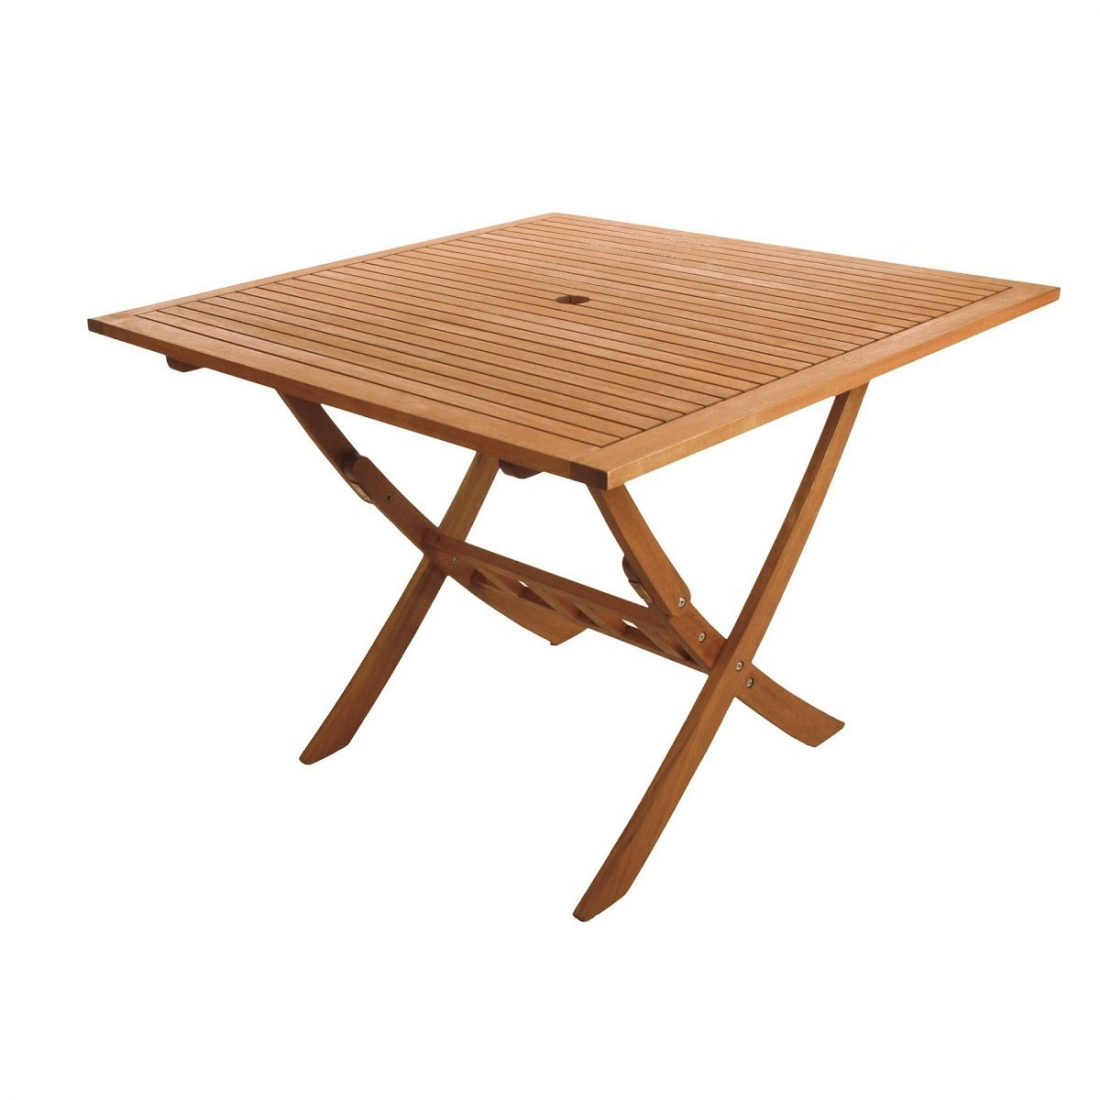 Table pliante forest 100x100 de ezpeleta - Table de bridge pliante ...